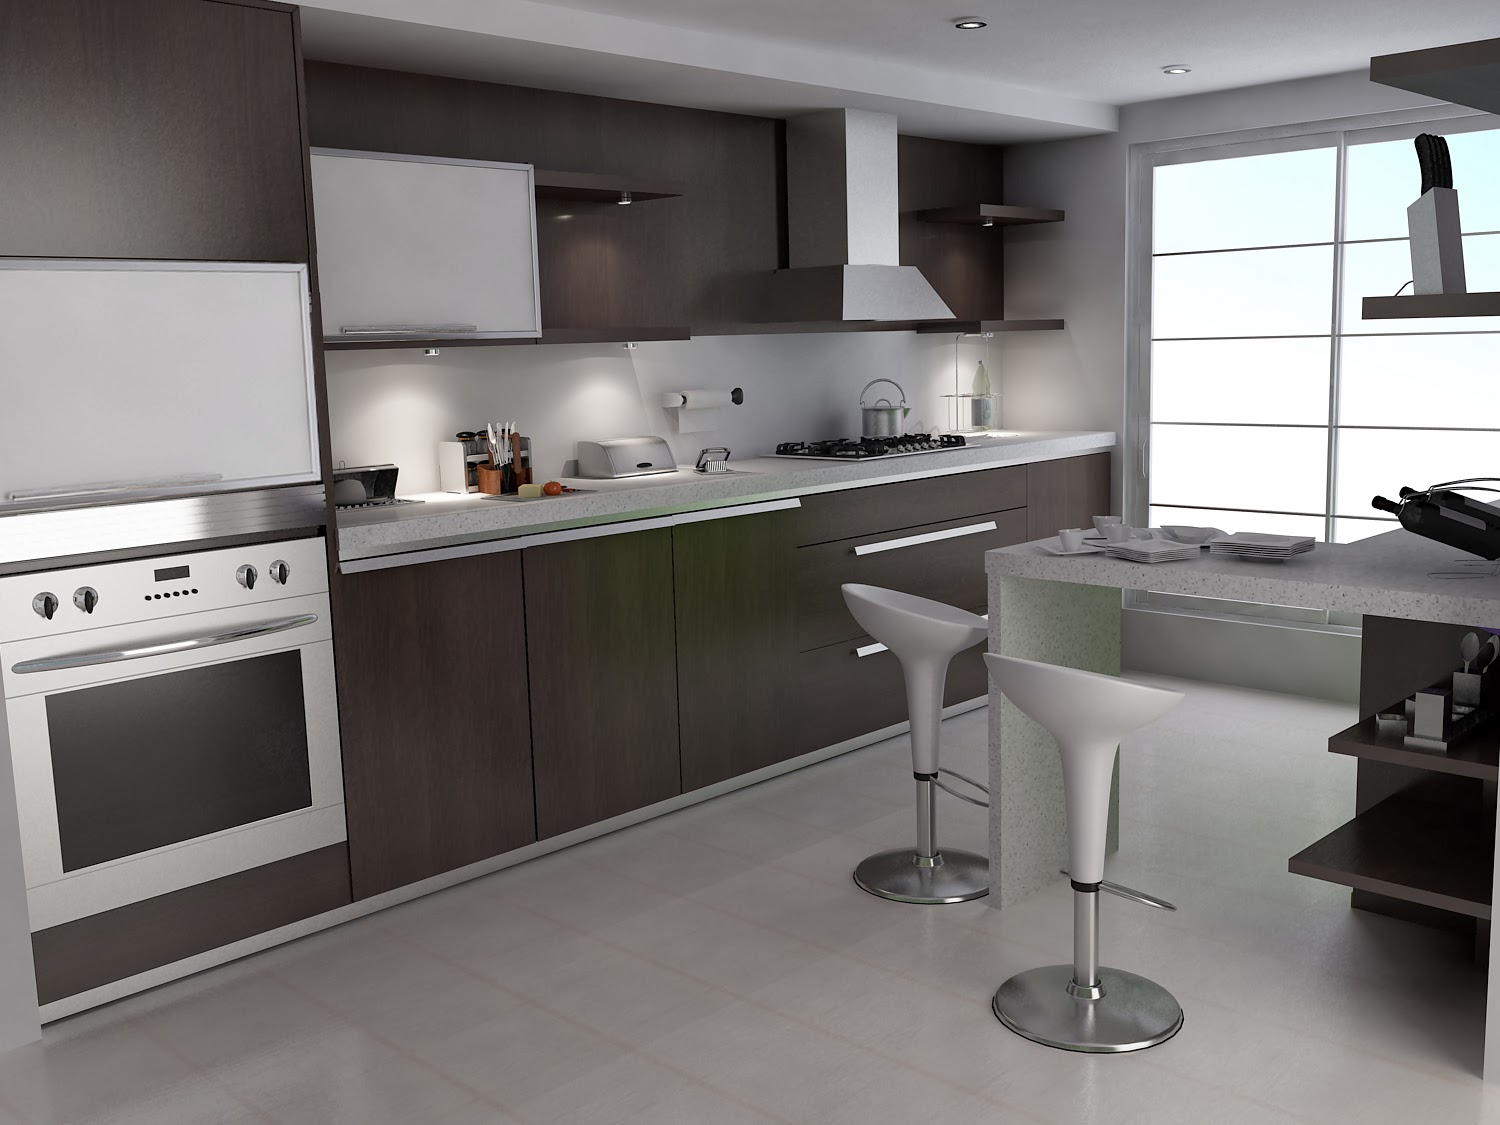 Small kitchen interior design model home interiors for Kitchen designs for small houses